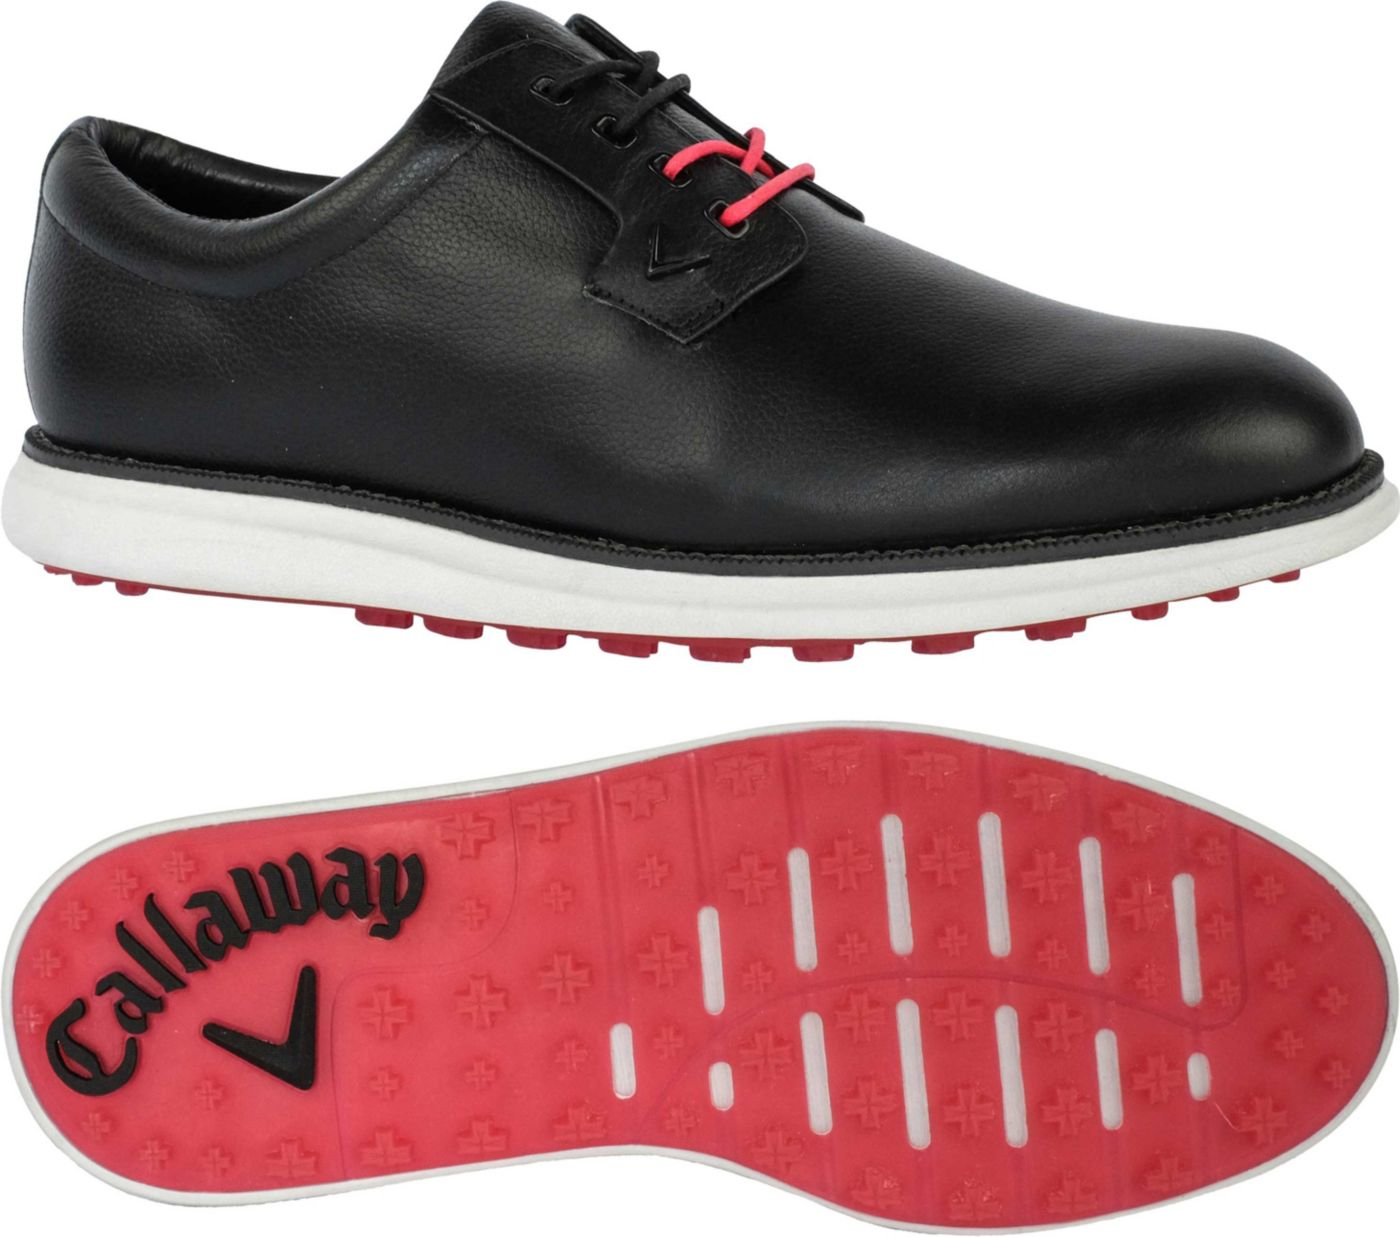 Callaway Men's Swami Shoes